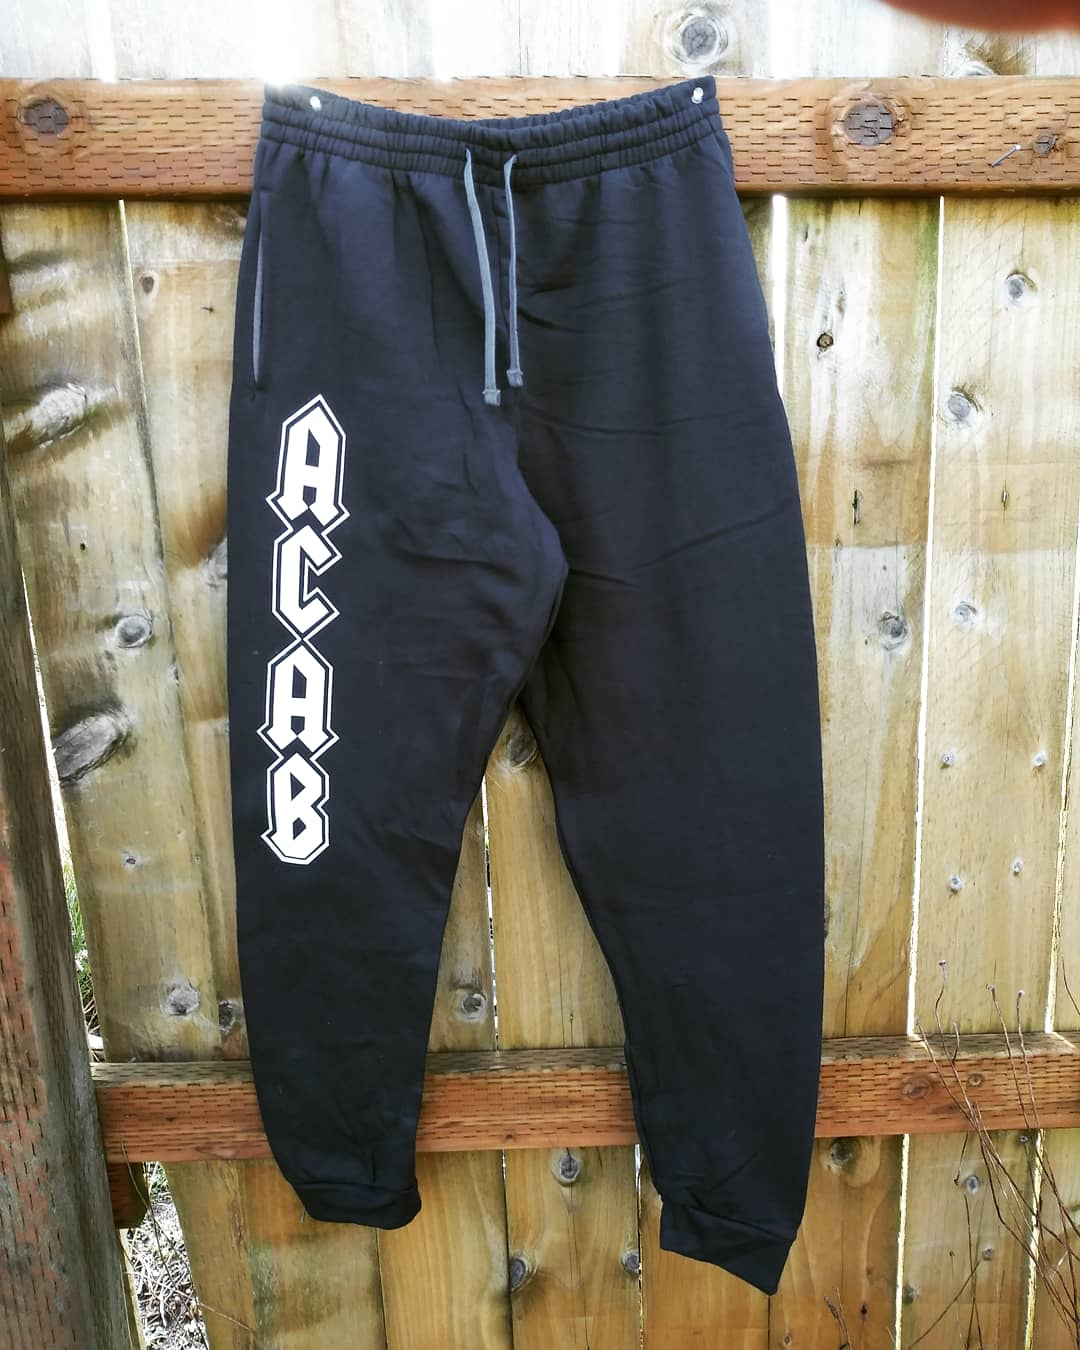 Image of ACAB Joggers in Heavy Metal Font with POCKETS